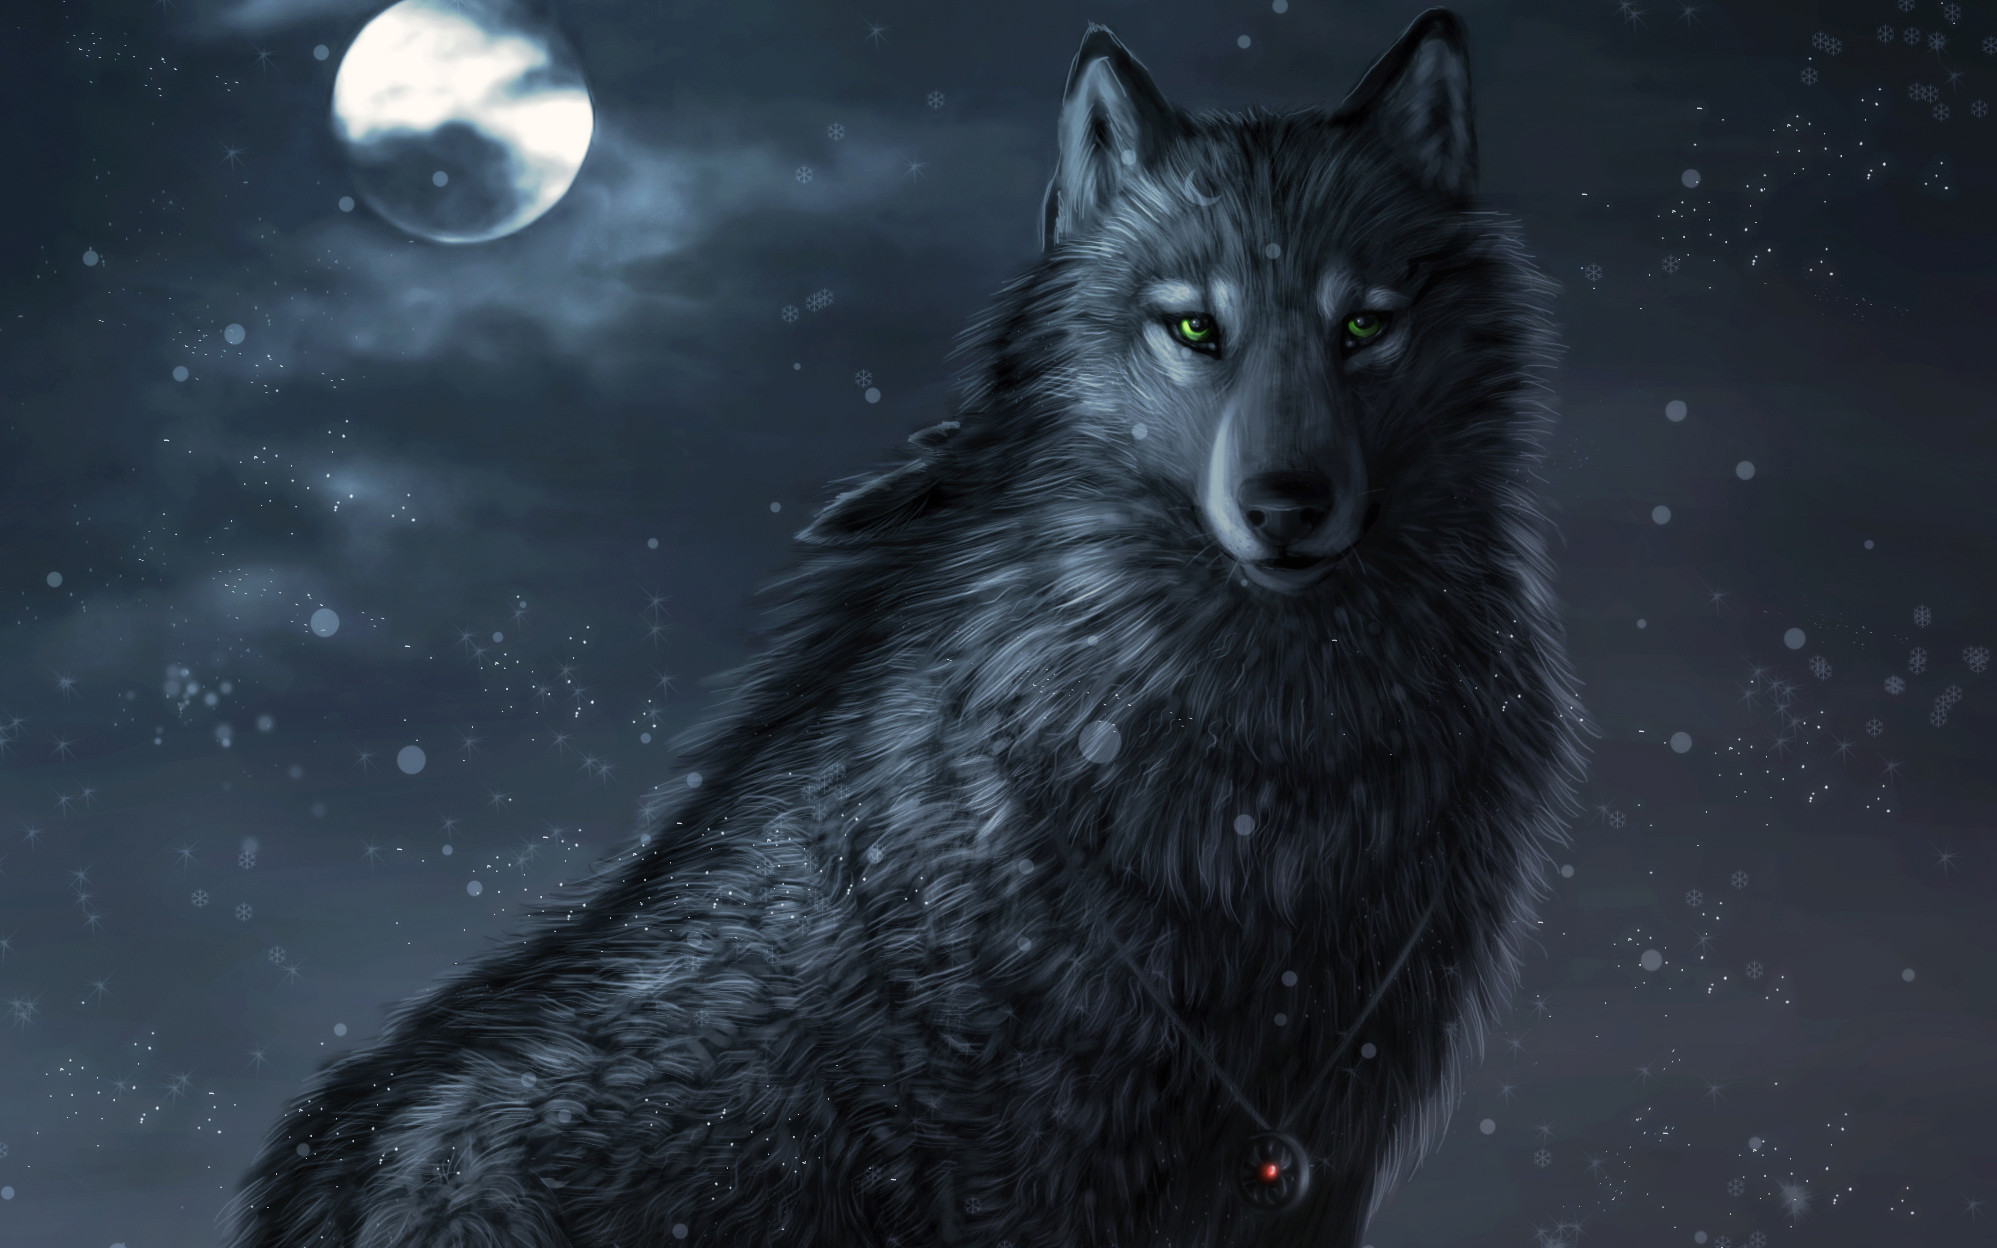 werewolf wallpapers for smartphone best hd wallpaper